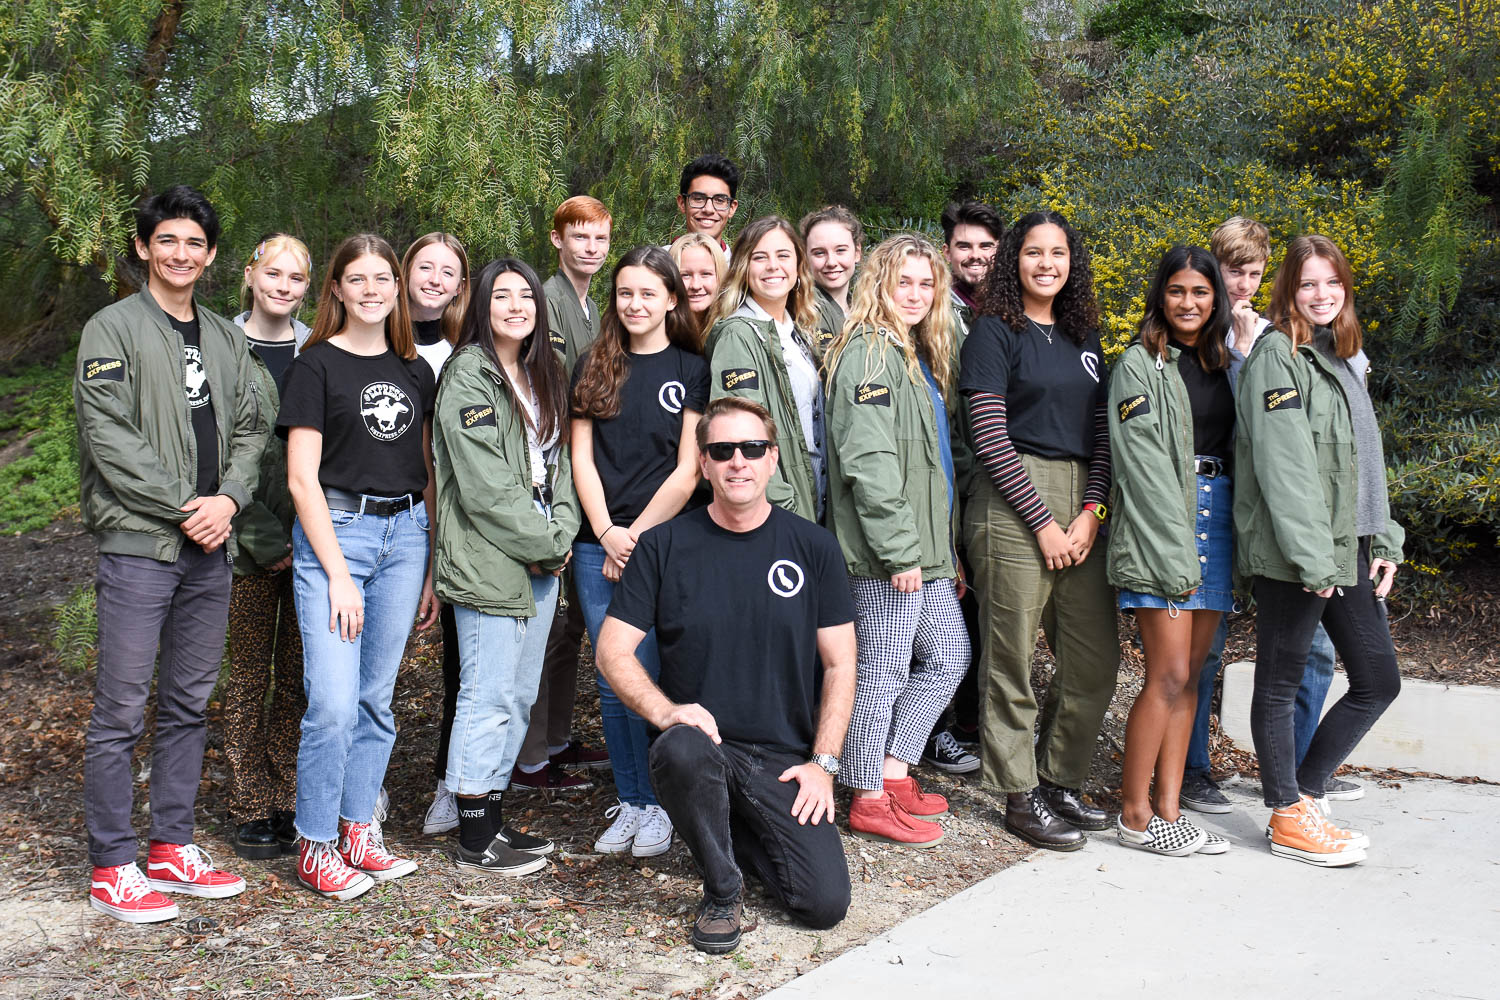 The 2018-2019 Express staff wearing shirts that quote California Education Code 48907.